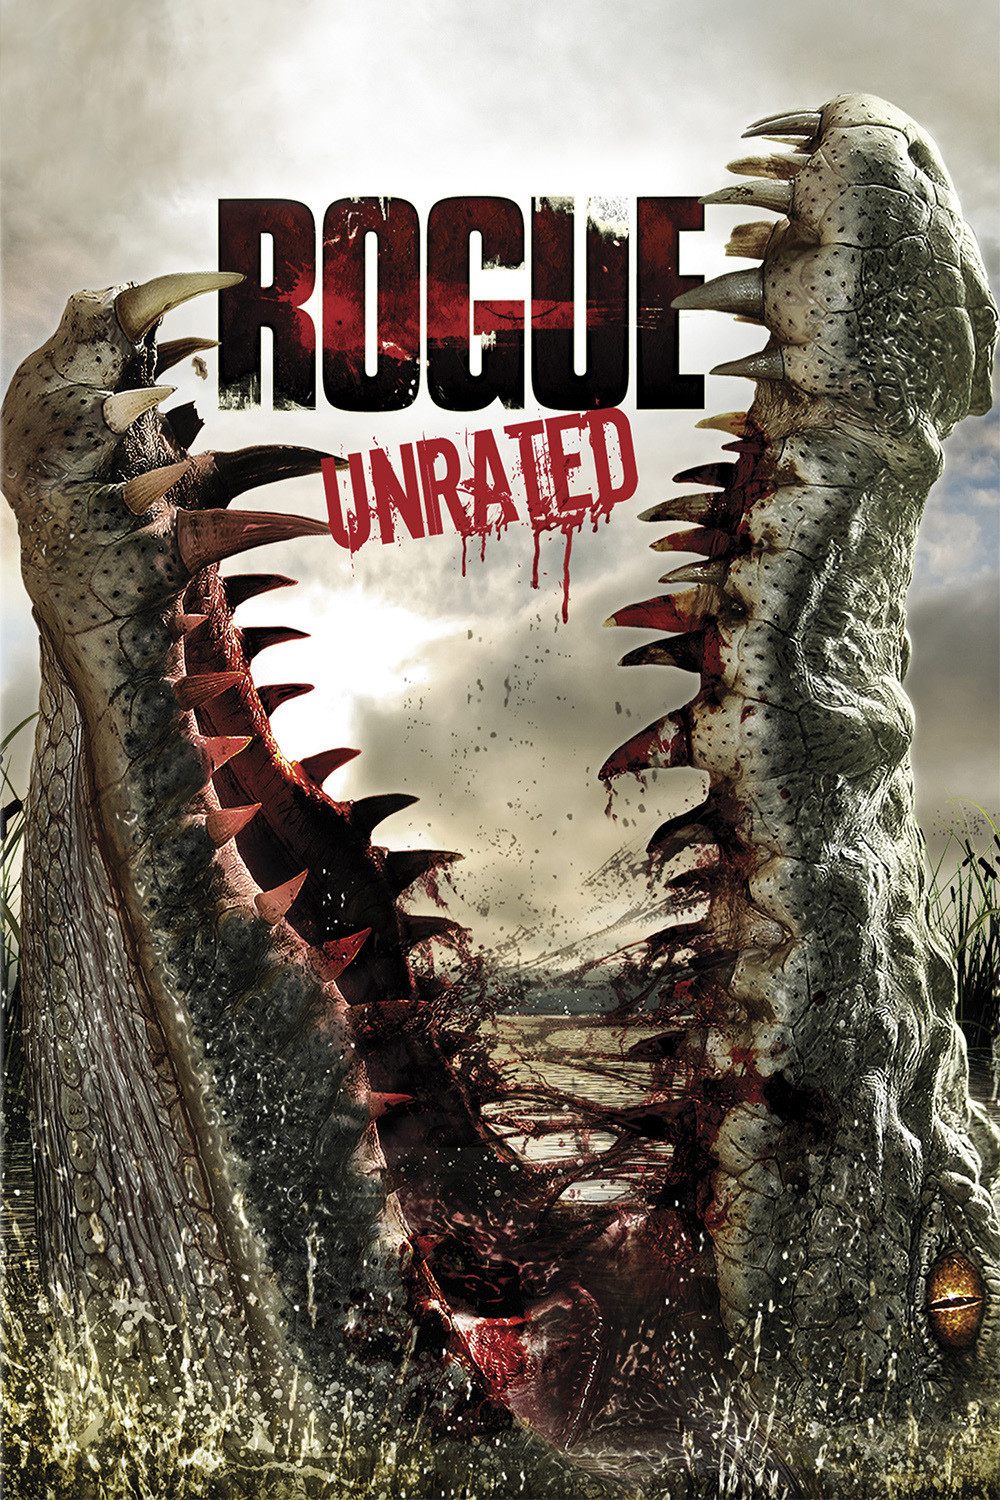 Rogue-2007-Hindi-Dubbed-Movie-Watch-Online